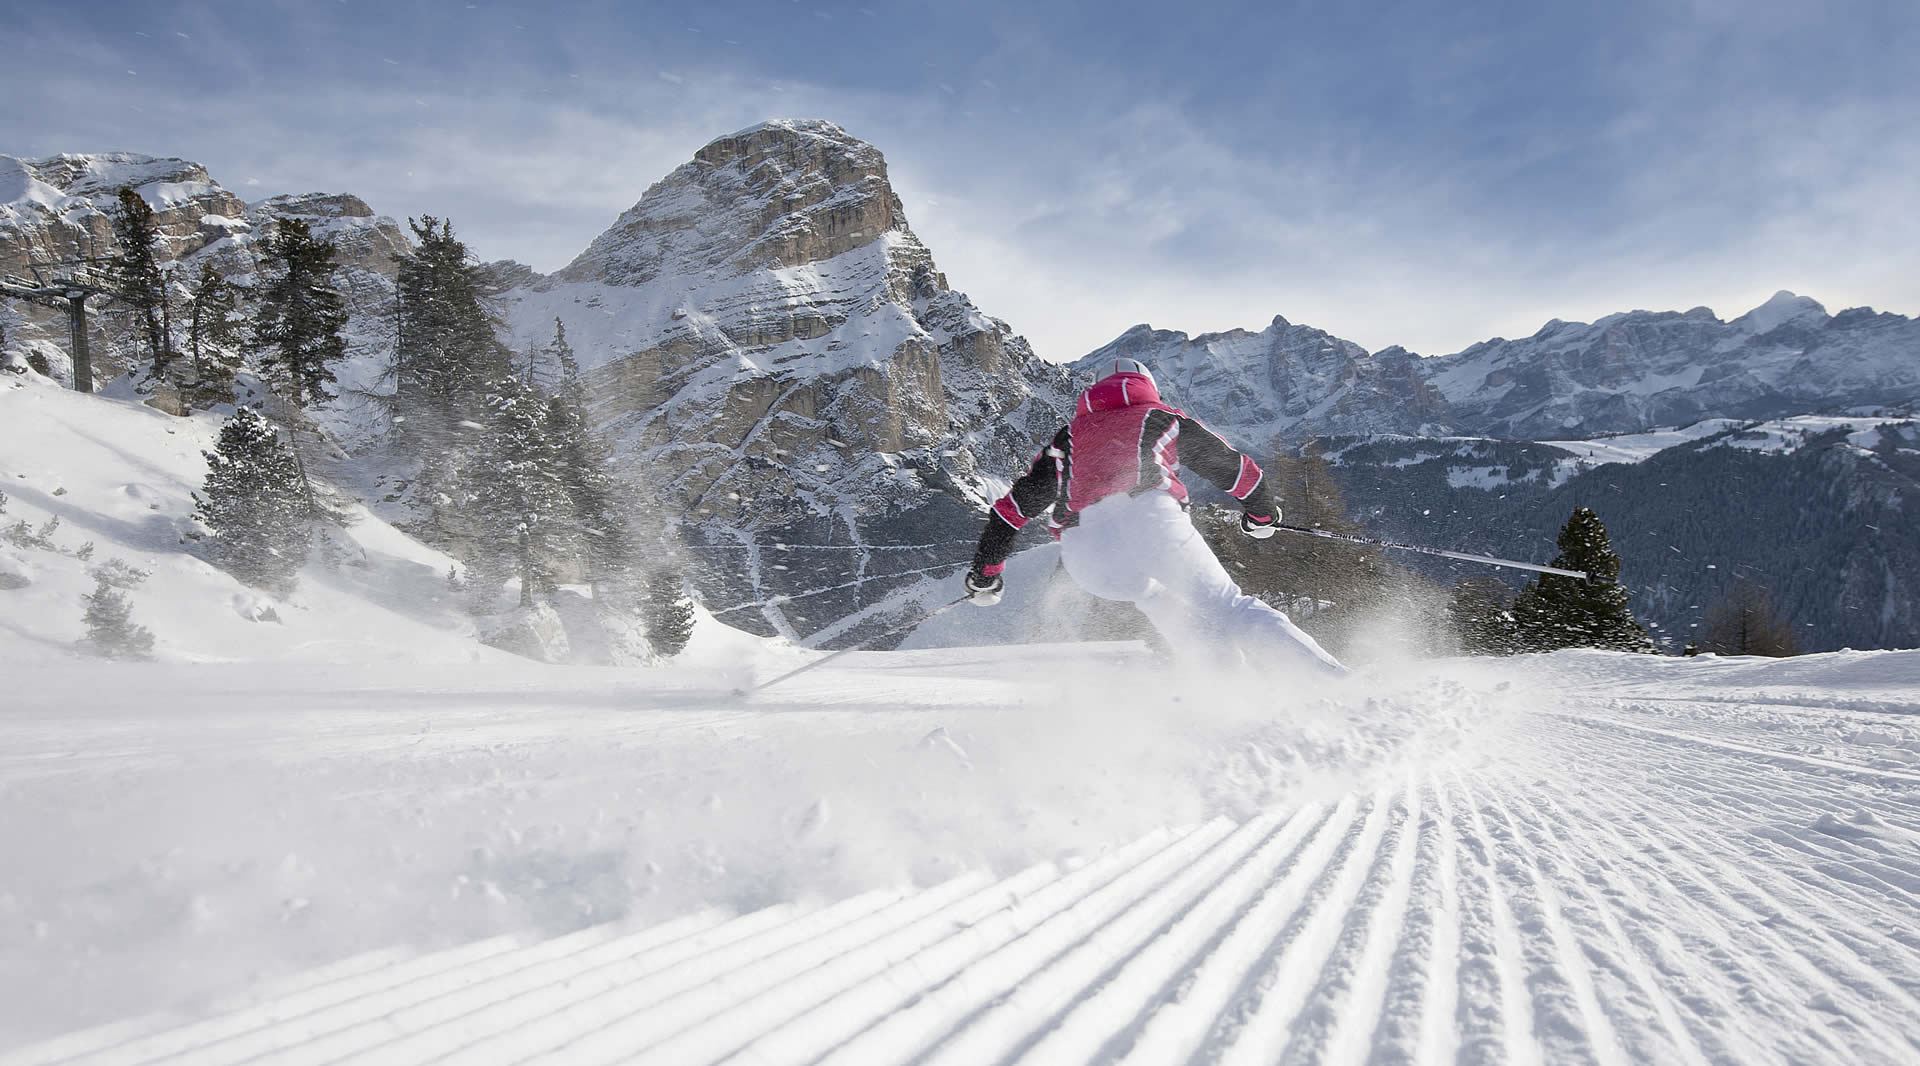 Skiing on the Forcella Ski slope of the Dolomiti Superski